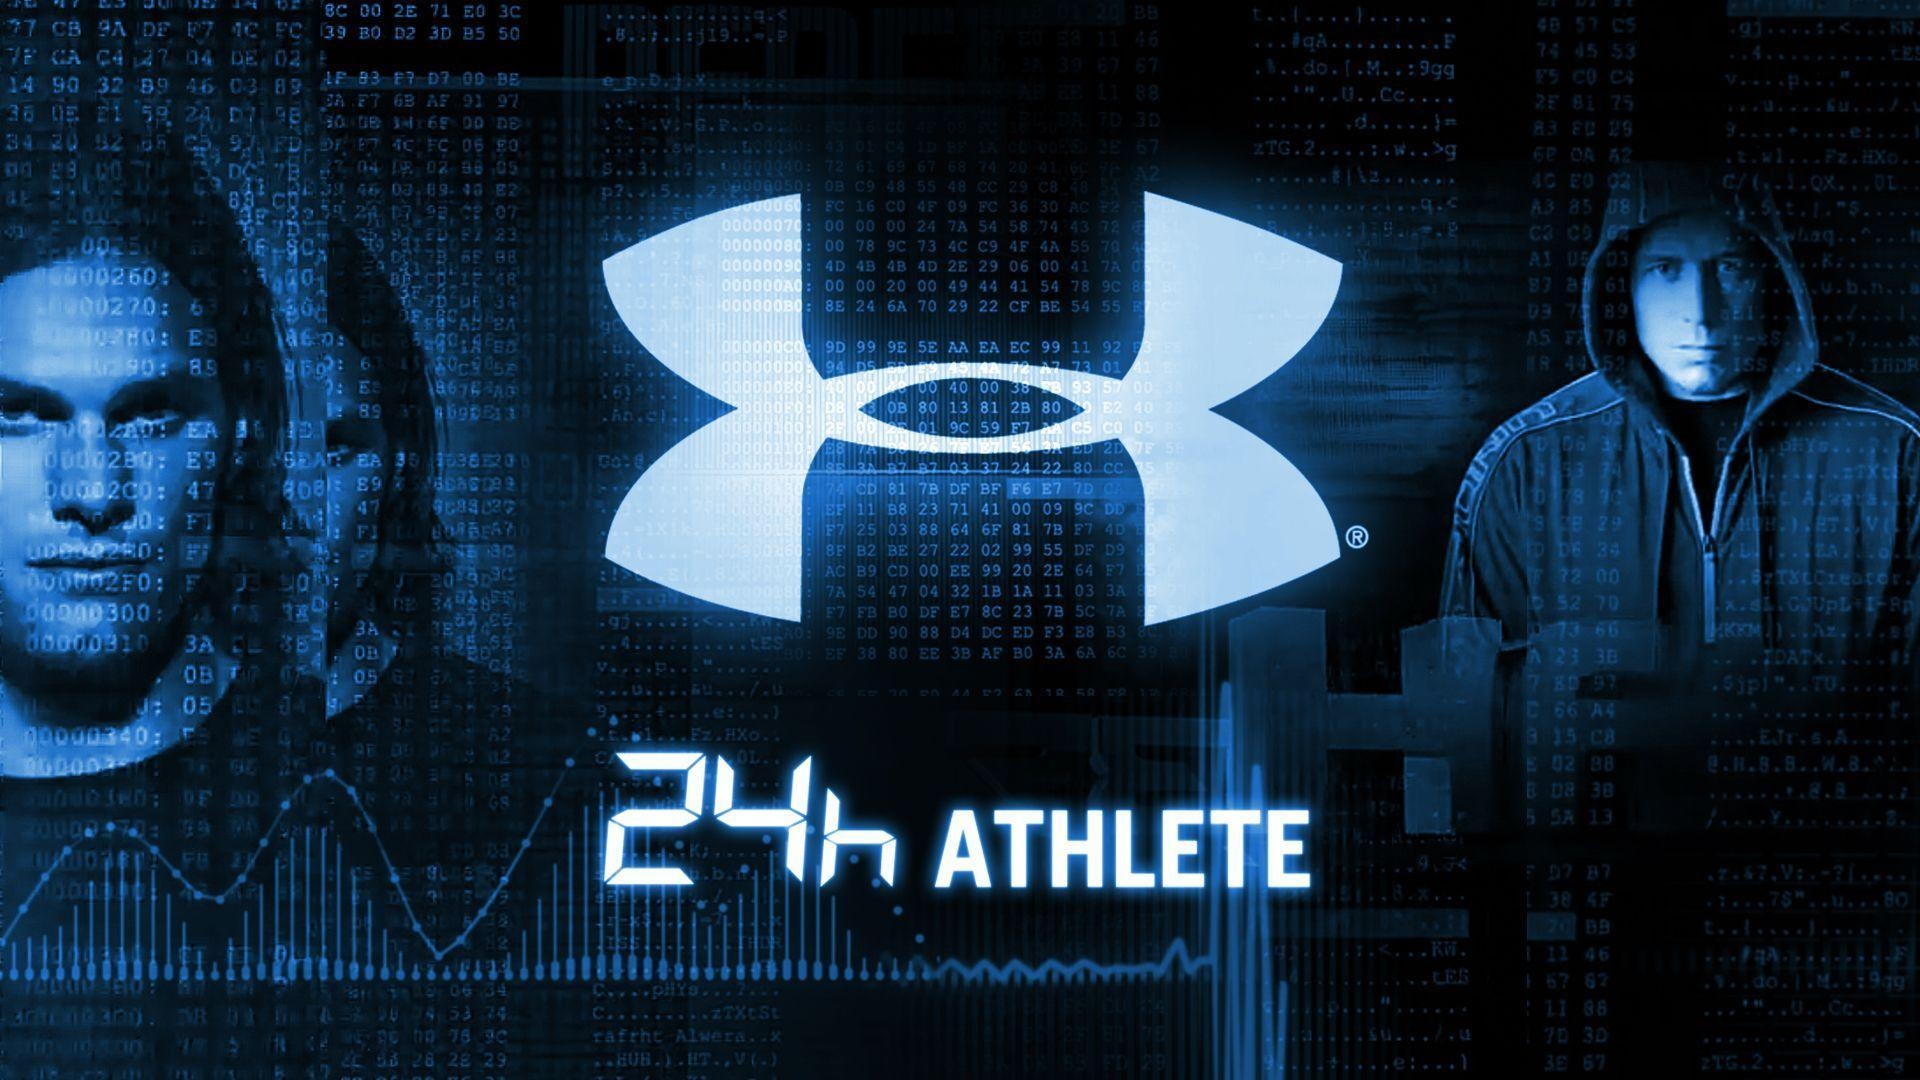 cool under armor wallpaper - photo #24